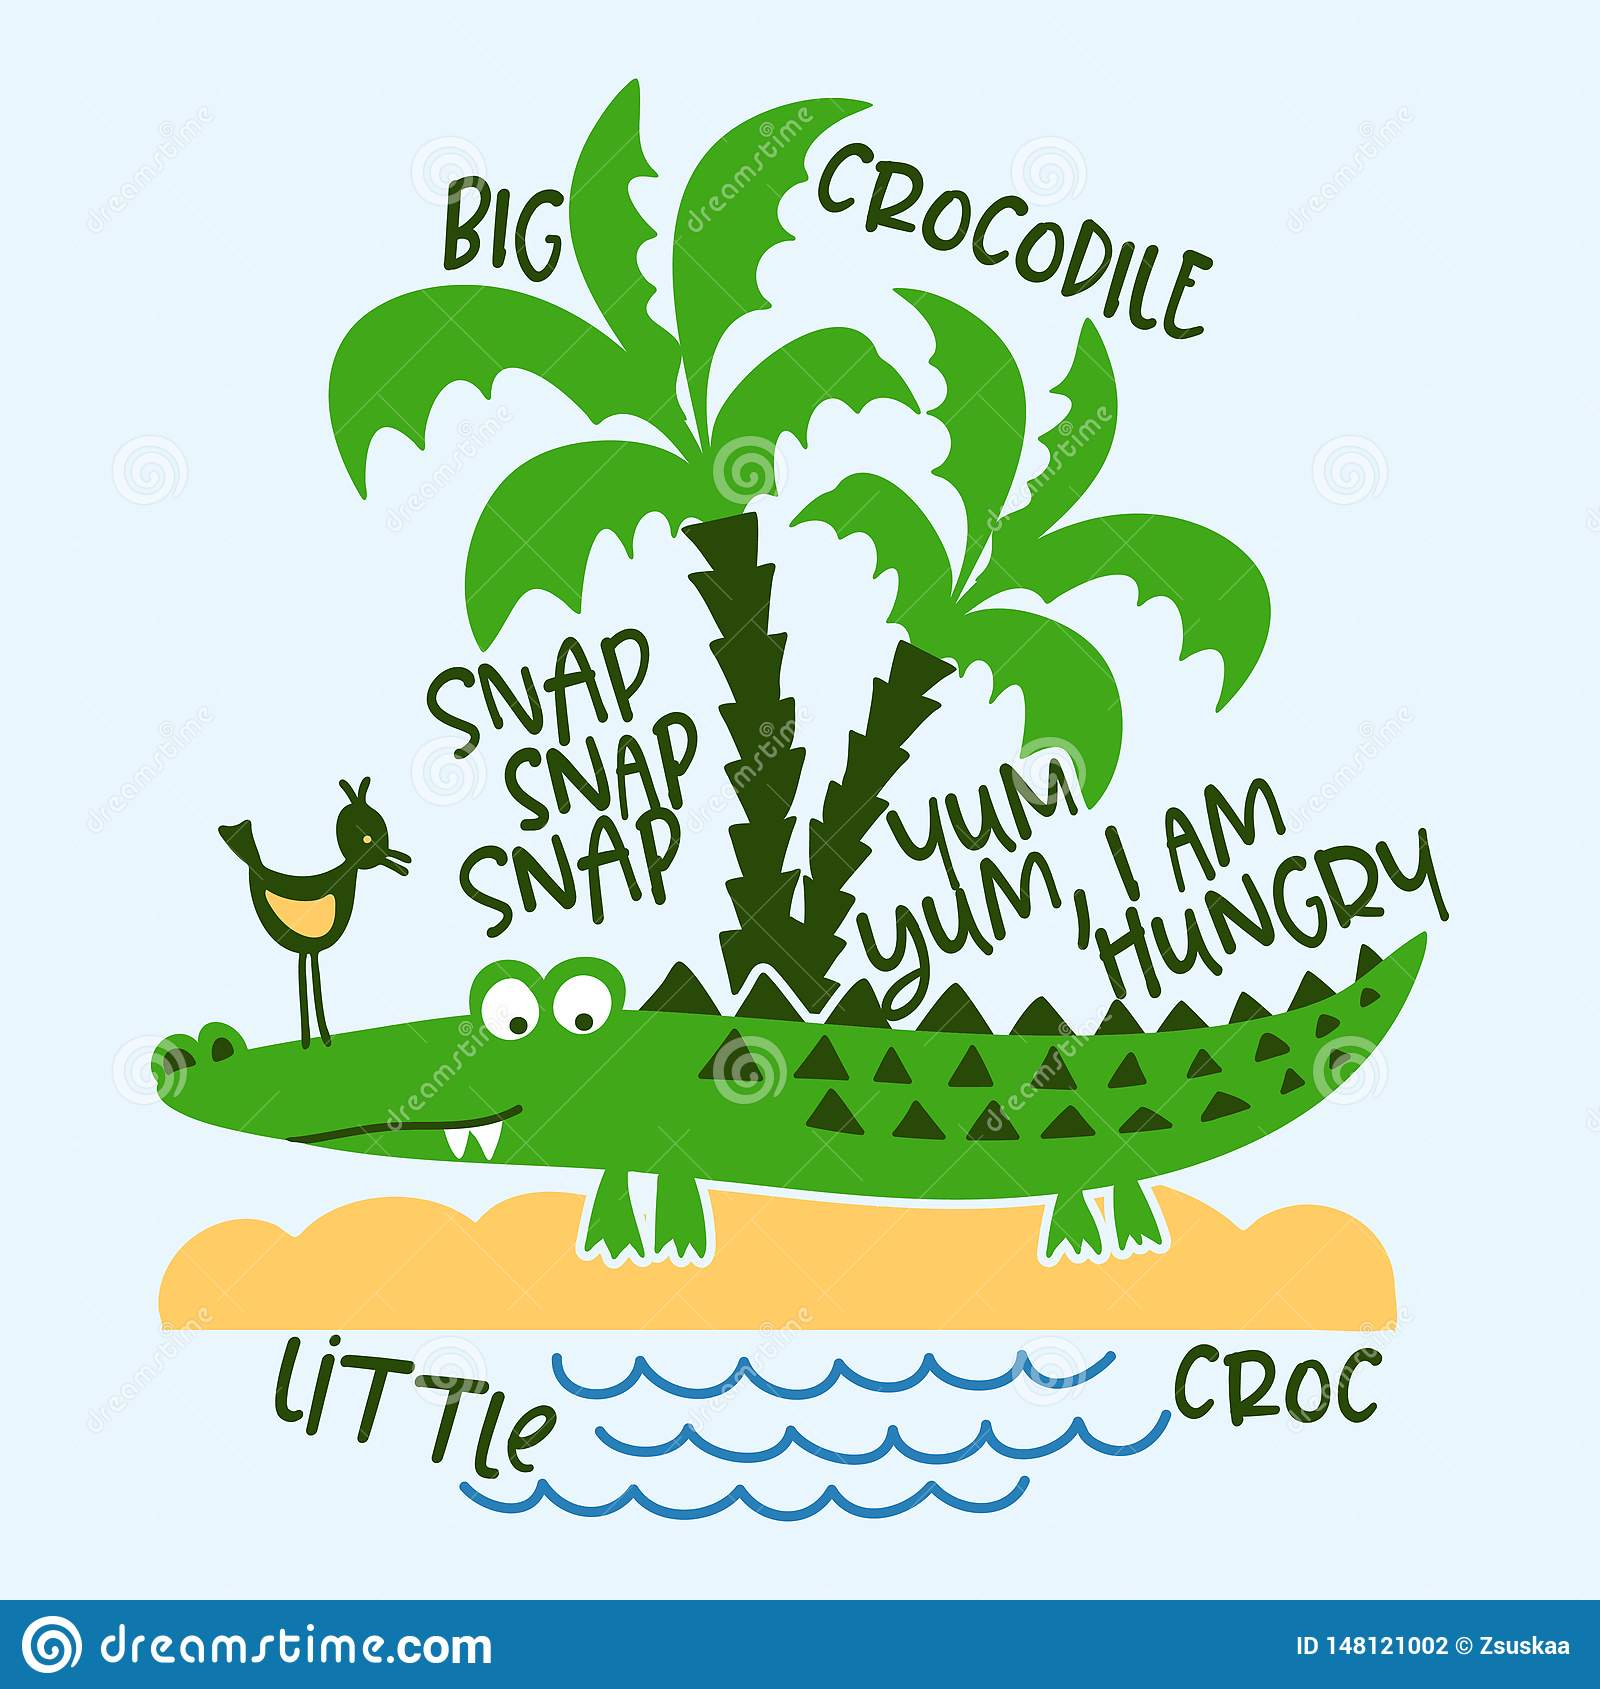 Crocodile and nature print design with text